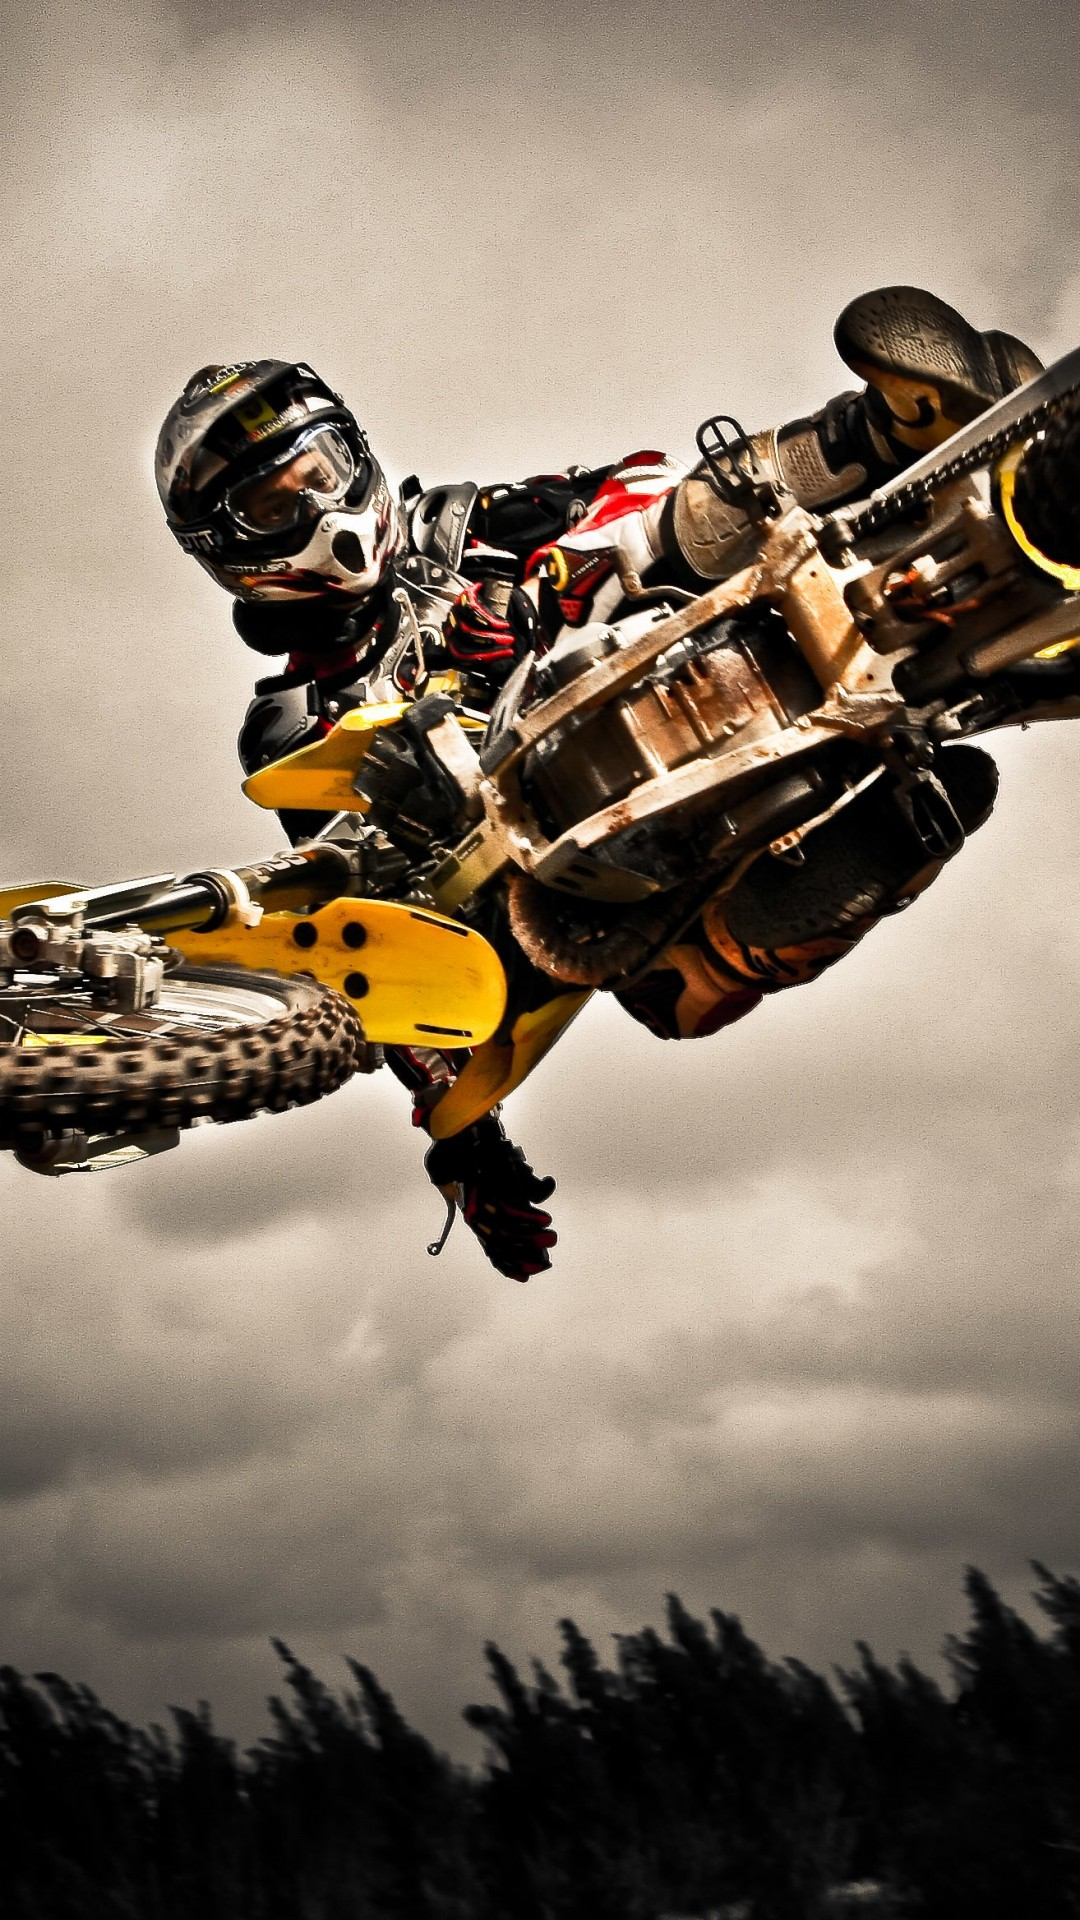 Motocross Jump Wallpaper for SONY Xperia Z1